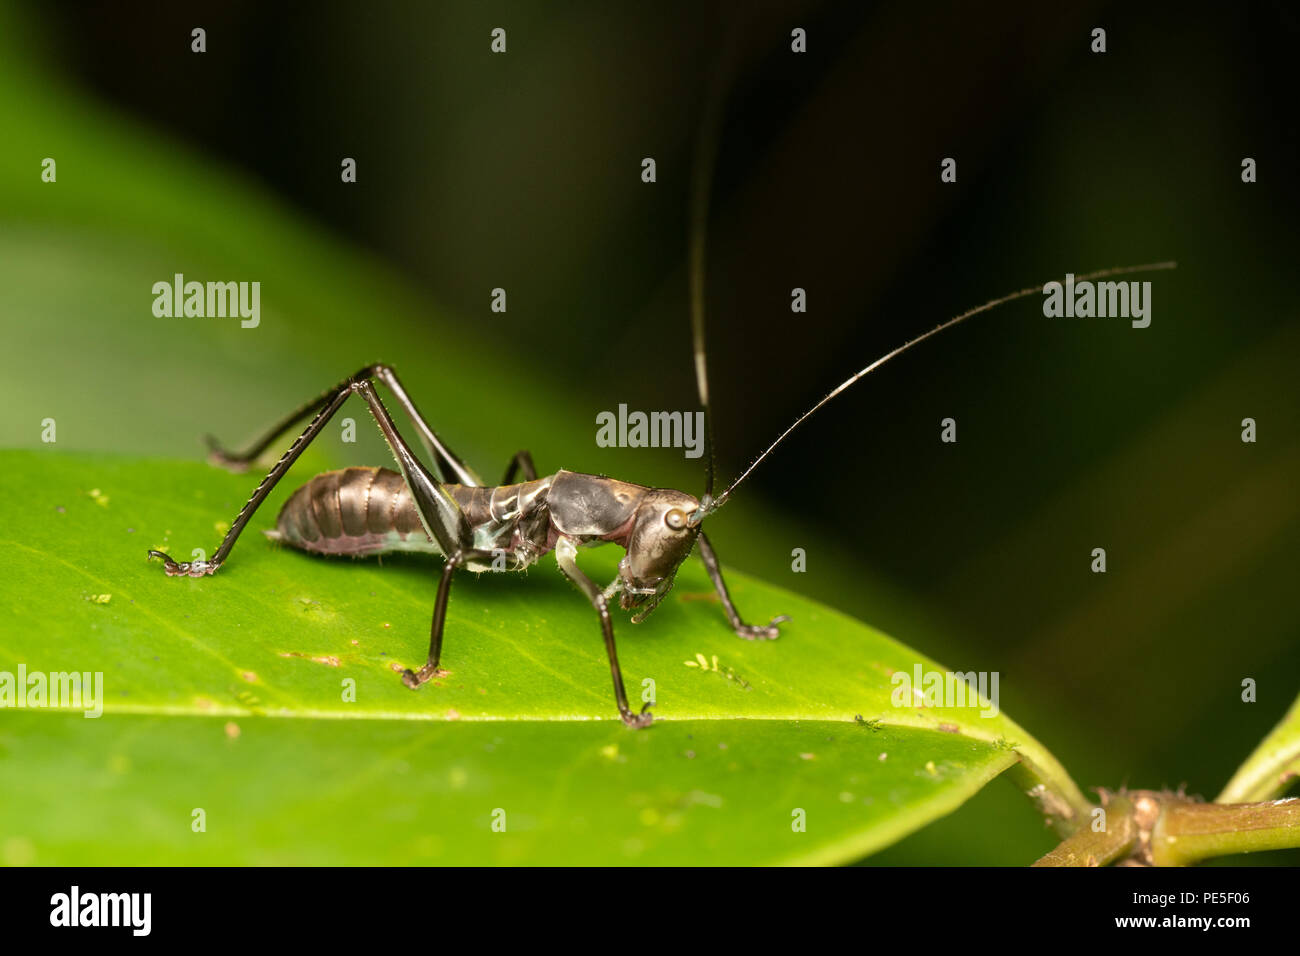 A Phaneropterinae nymph mimicking an ant for protection - its mimicry includes visual and well as motion to mimic an ant. - Stock Image